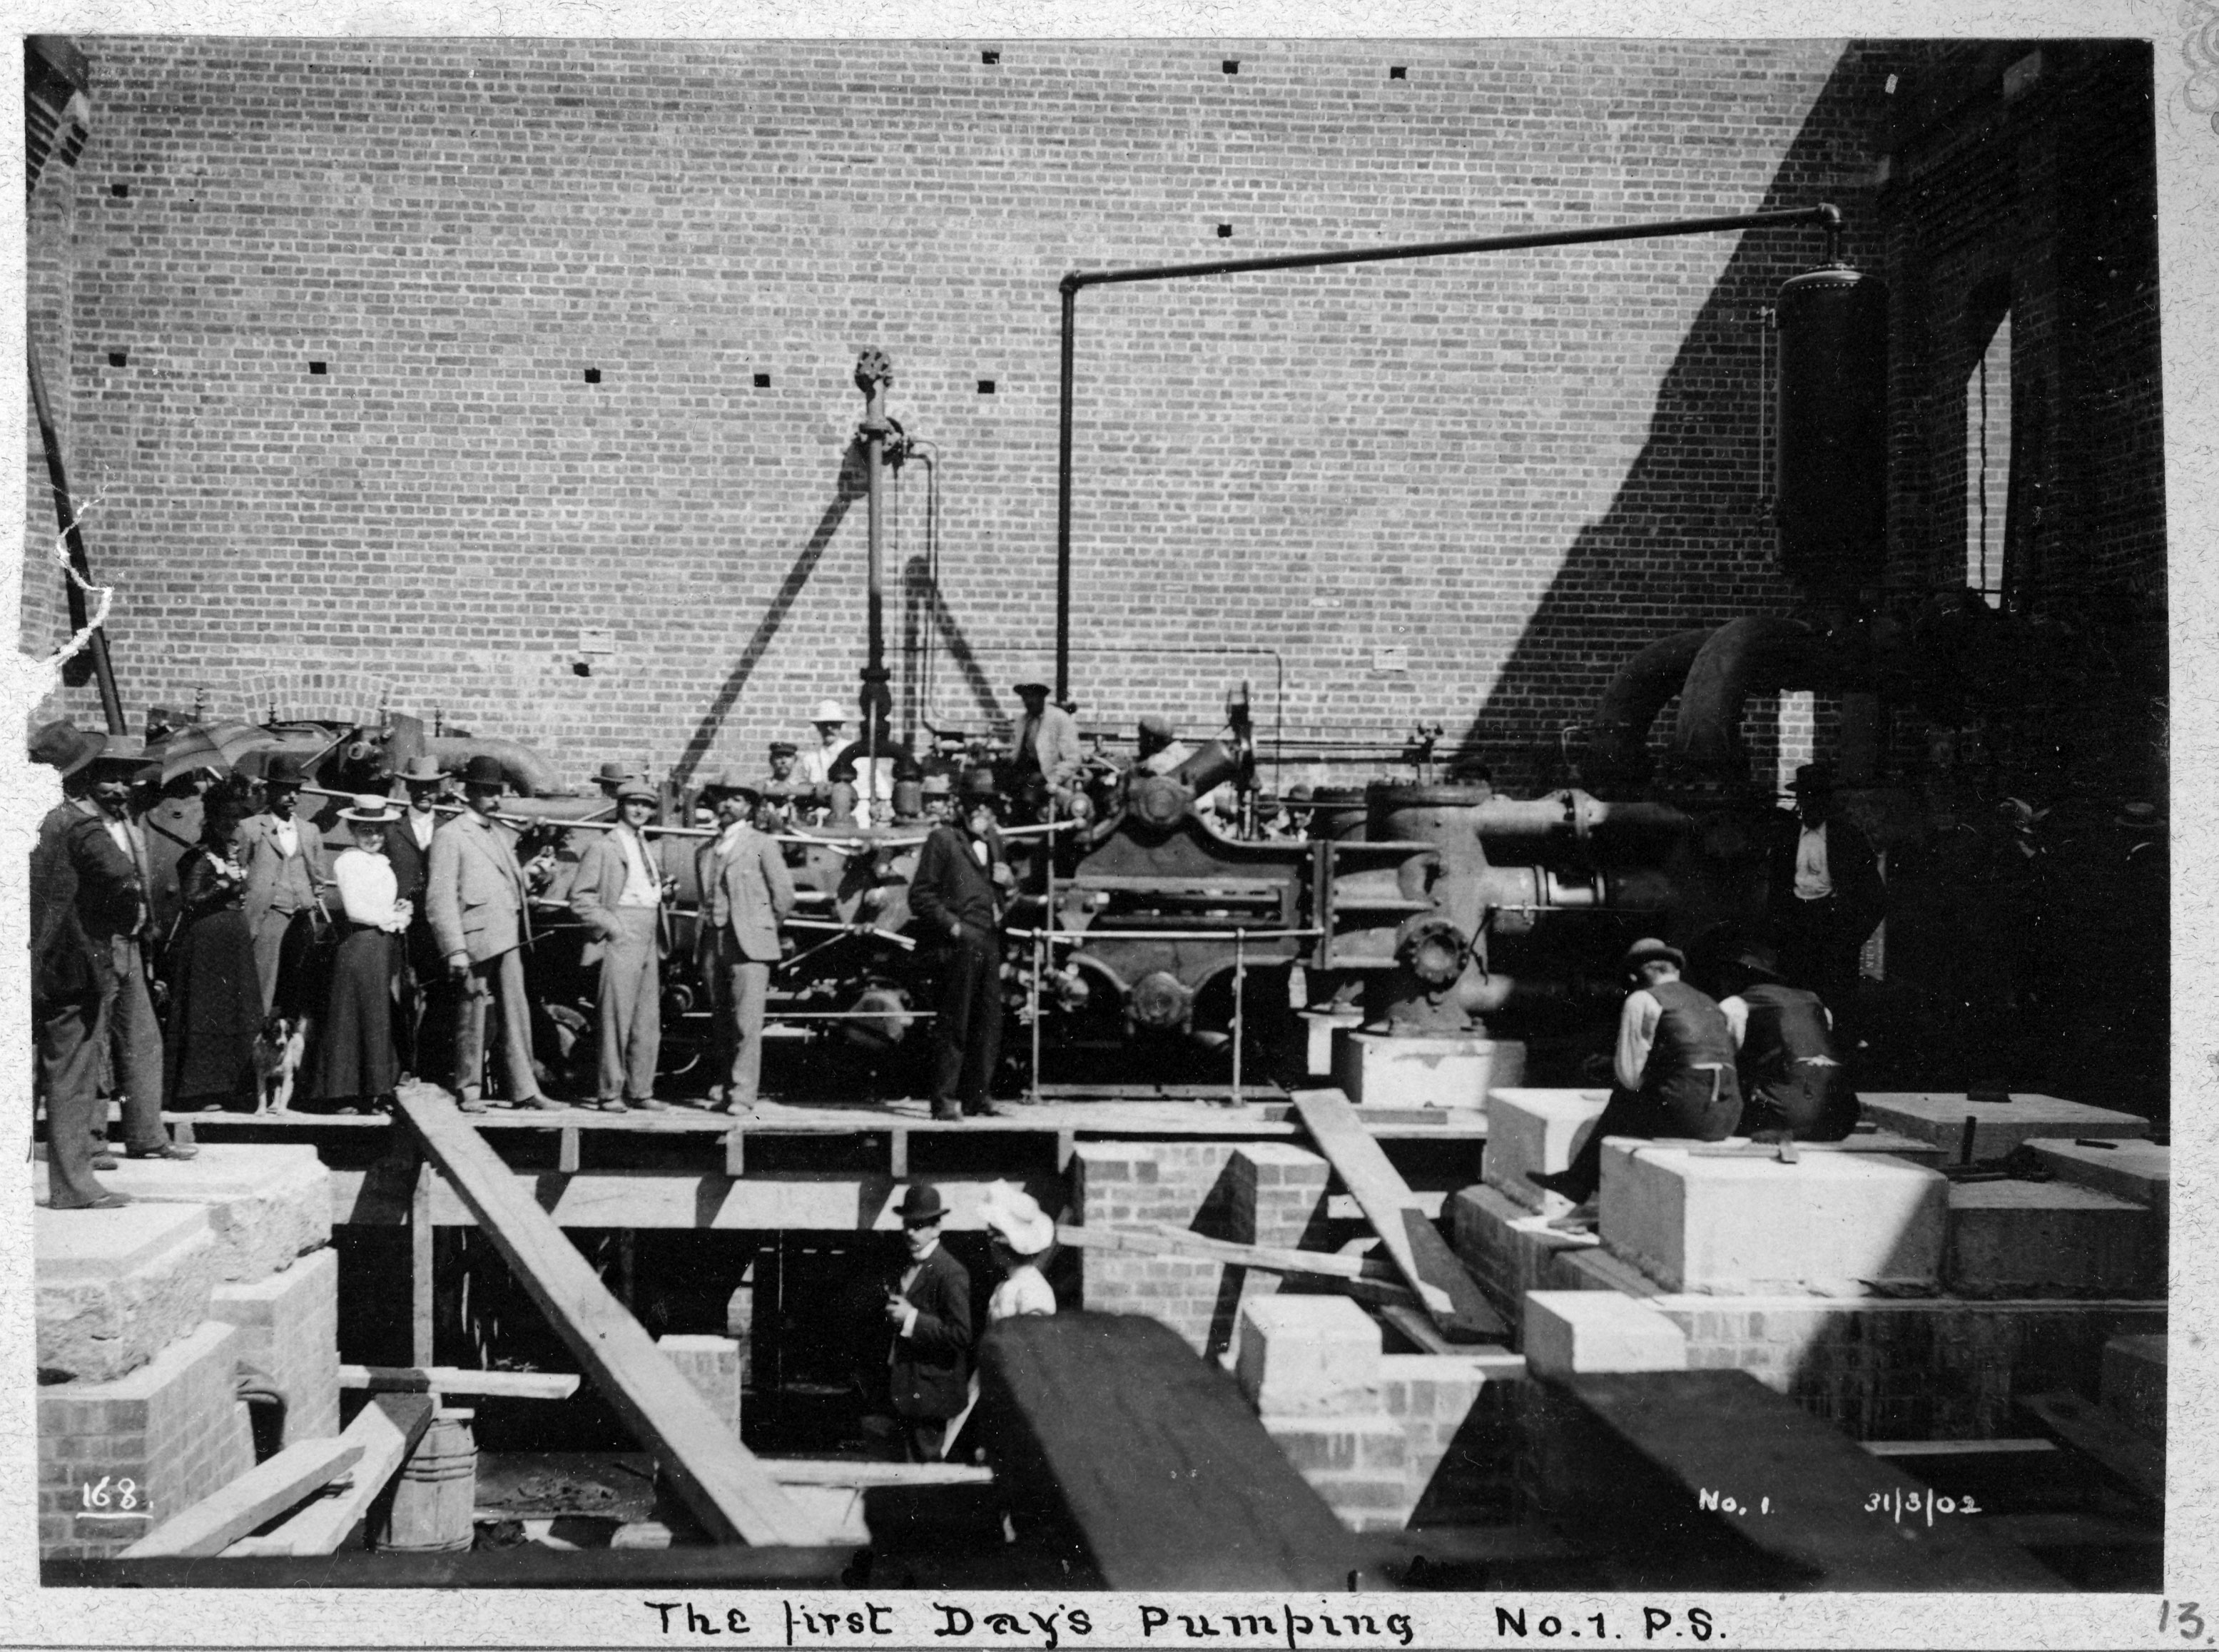 A crowd observes the first day's pumping at No 1 Pump Station, c. 1902.